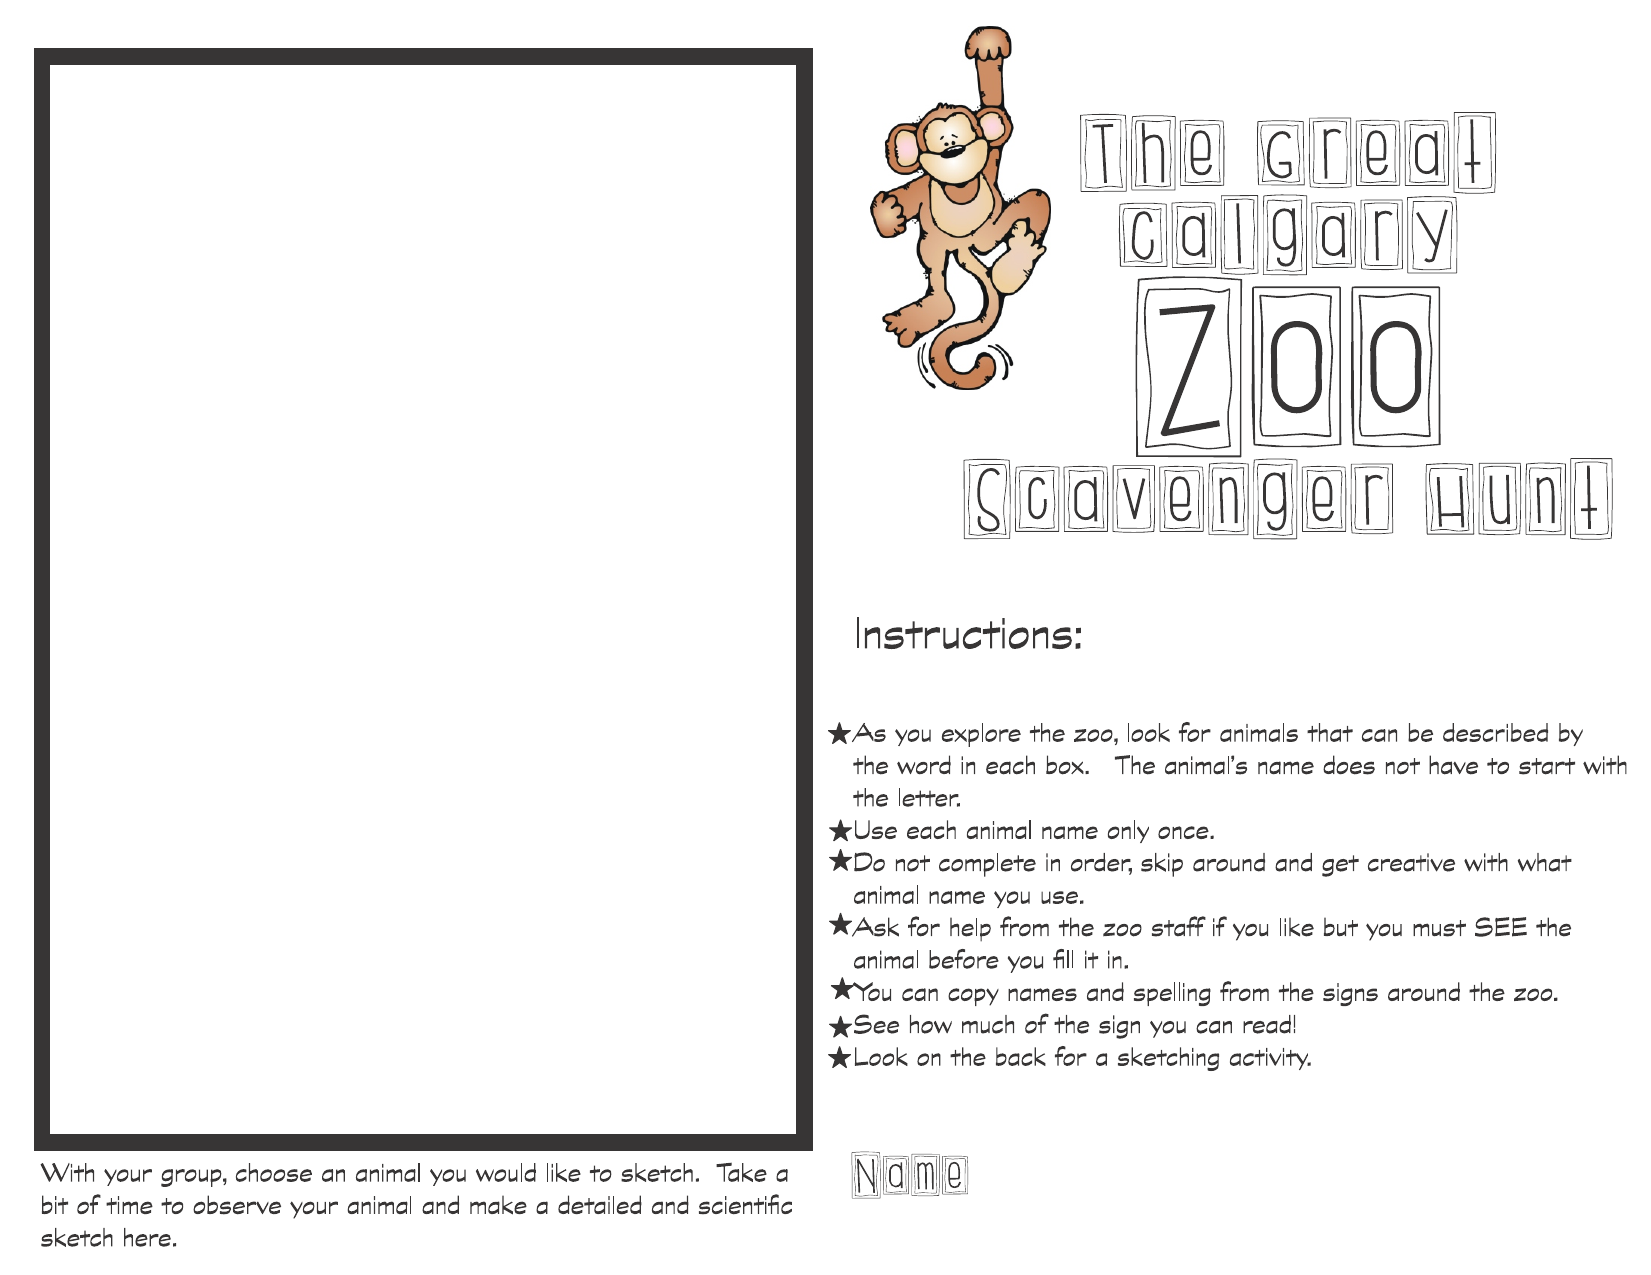 Calgary Zoo Scavenger Hunt Resource Preview